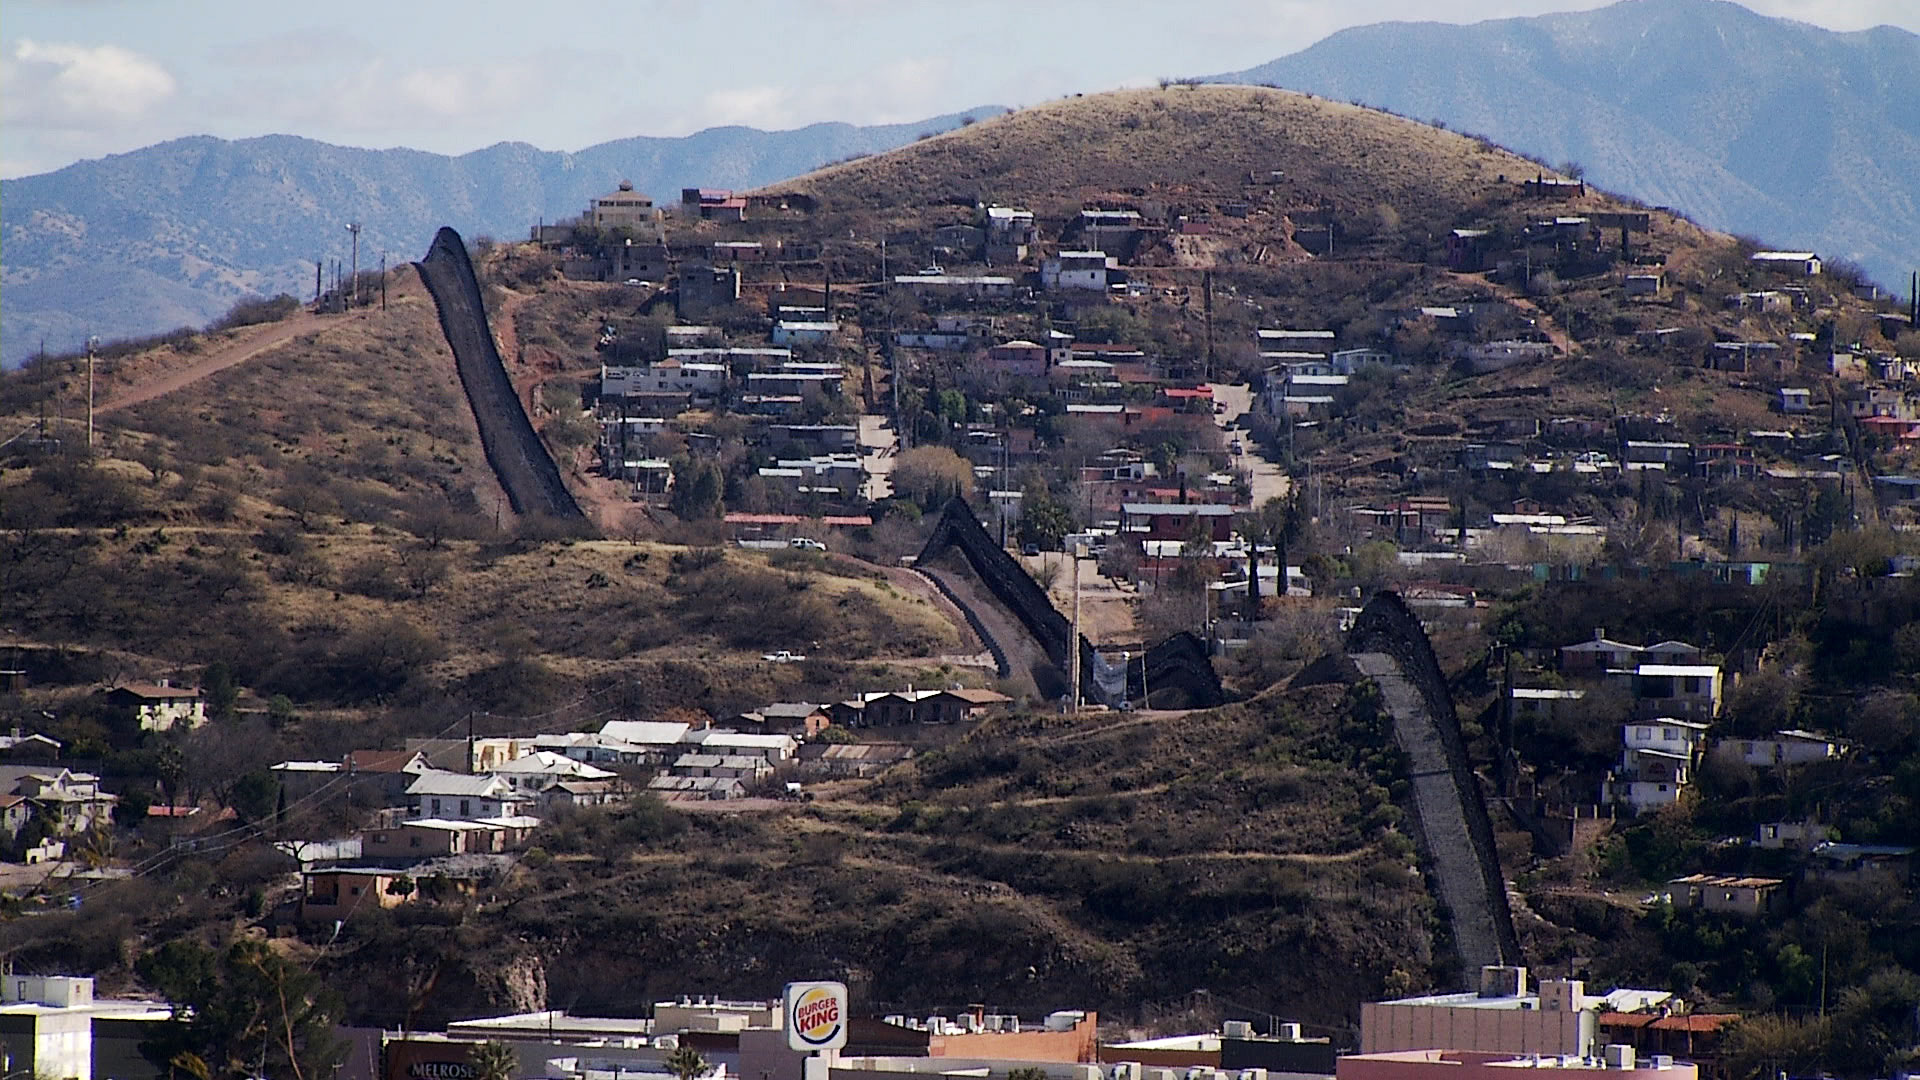 From Nogales, Arizona, a view of the city and its border wall with Nogales, Sonora.